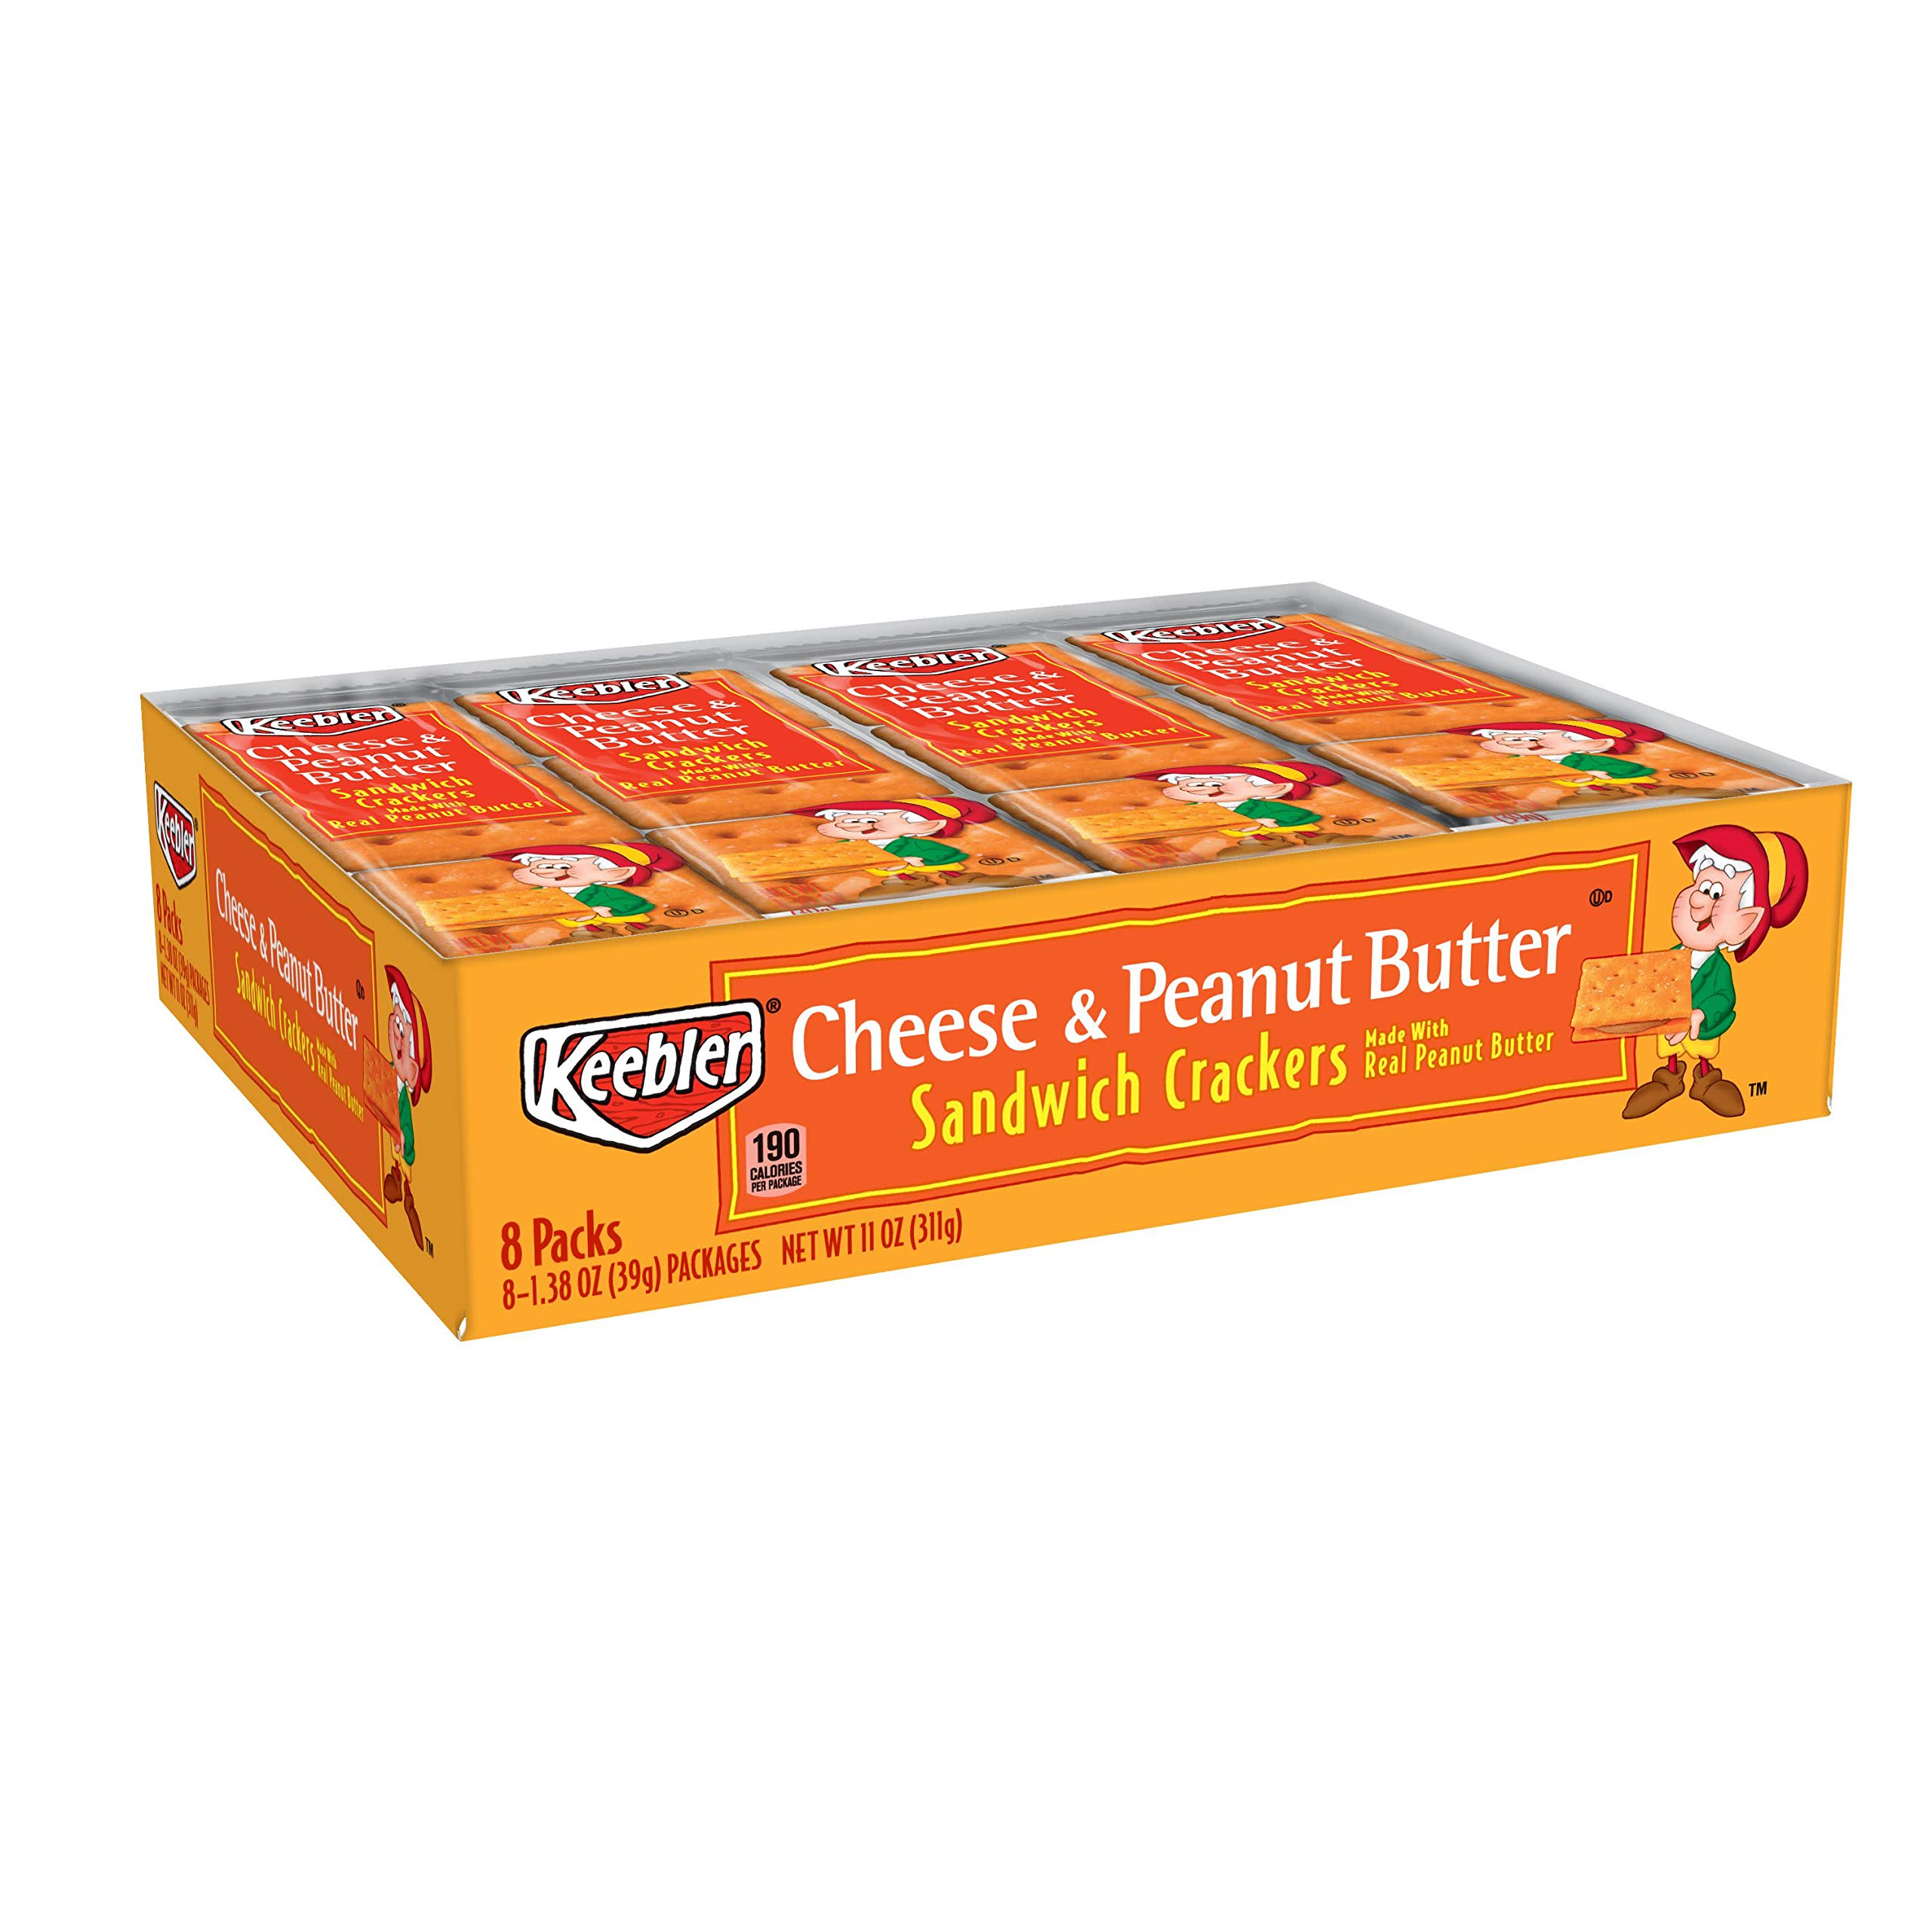 Keebler Cheese and Peanut Butter Sandwich Crackers, Single Serve, 1.38 oz Packages, 8 Count(Pack of 6) by Keebler Sandwich Crackers